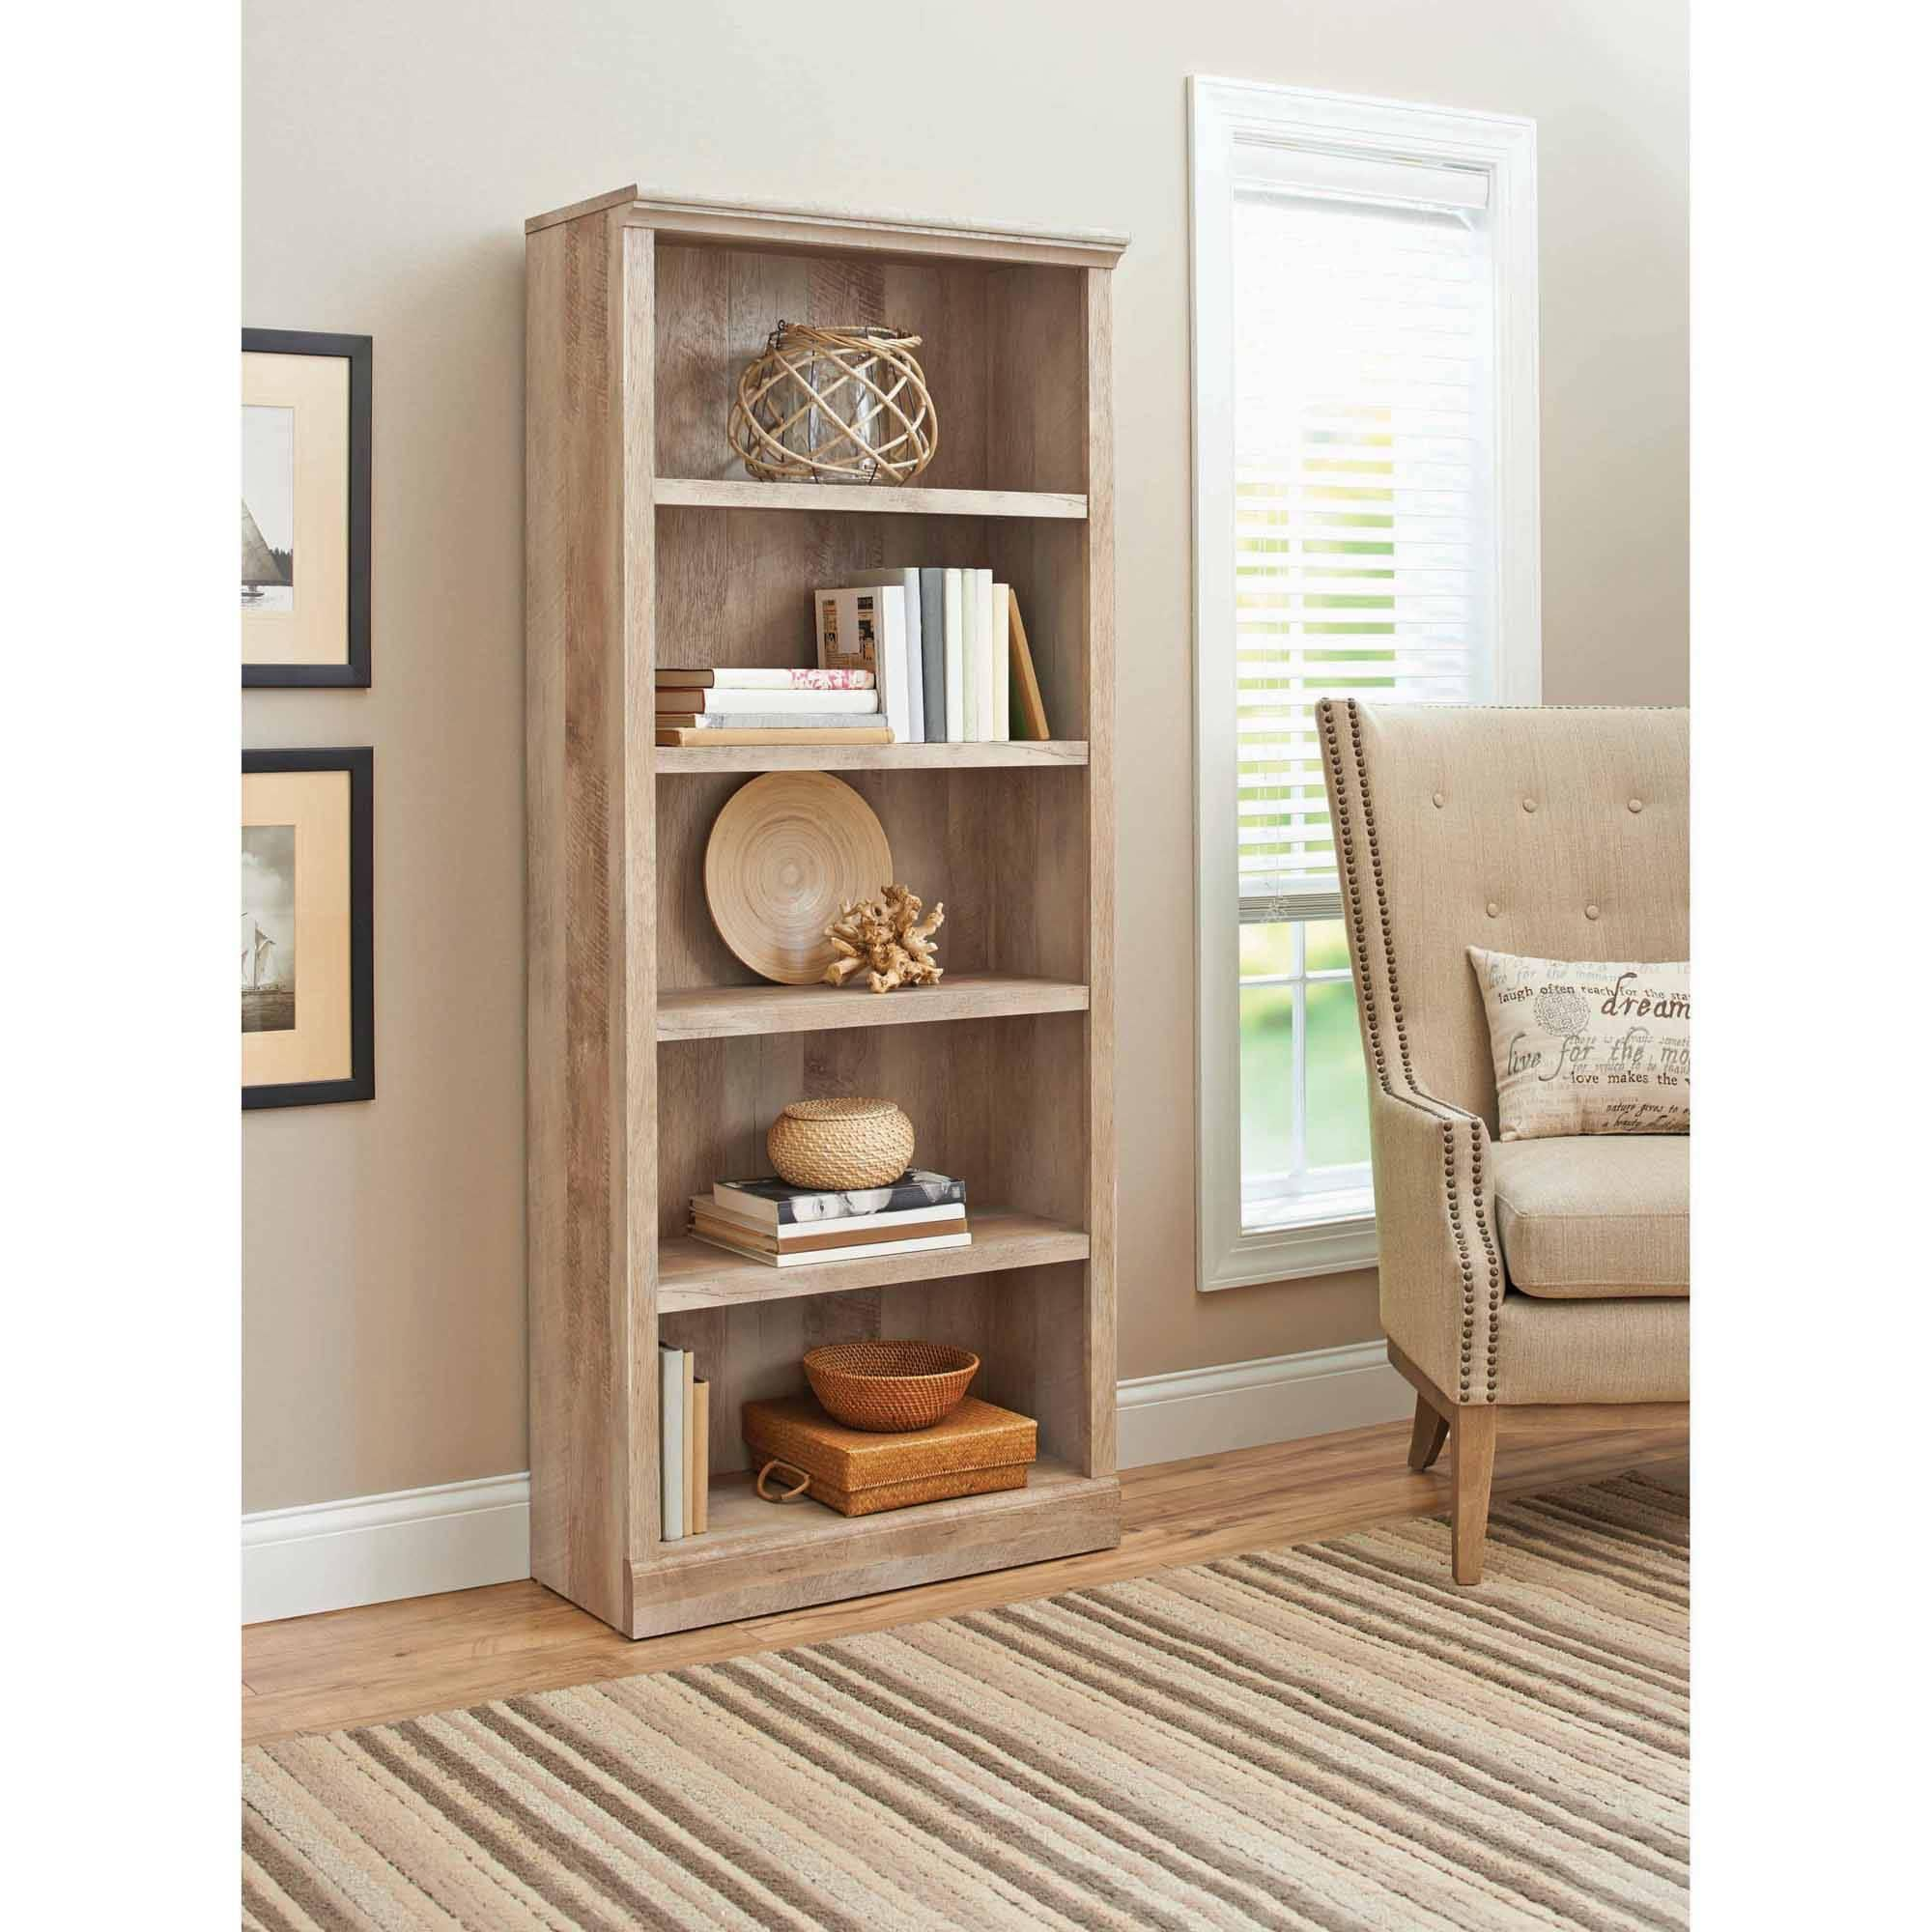 b1cdae35431f95e938fa7c8ada4b25c9 - Better Homes And Gardens Crossmill 5 Shelf Bookcase Multiple Finishes